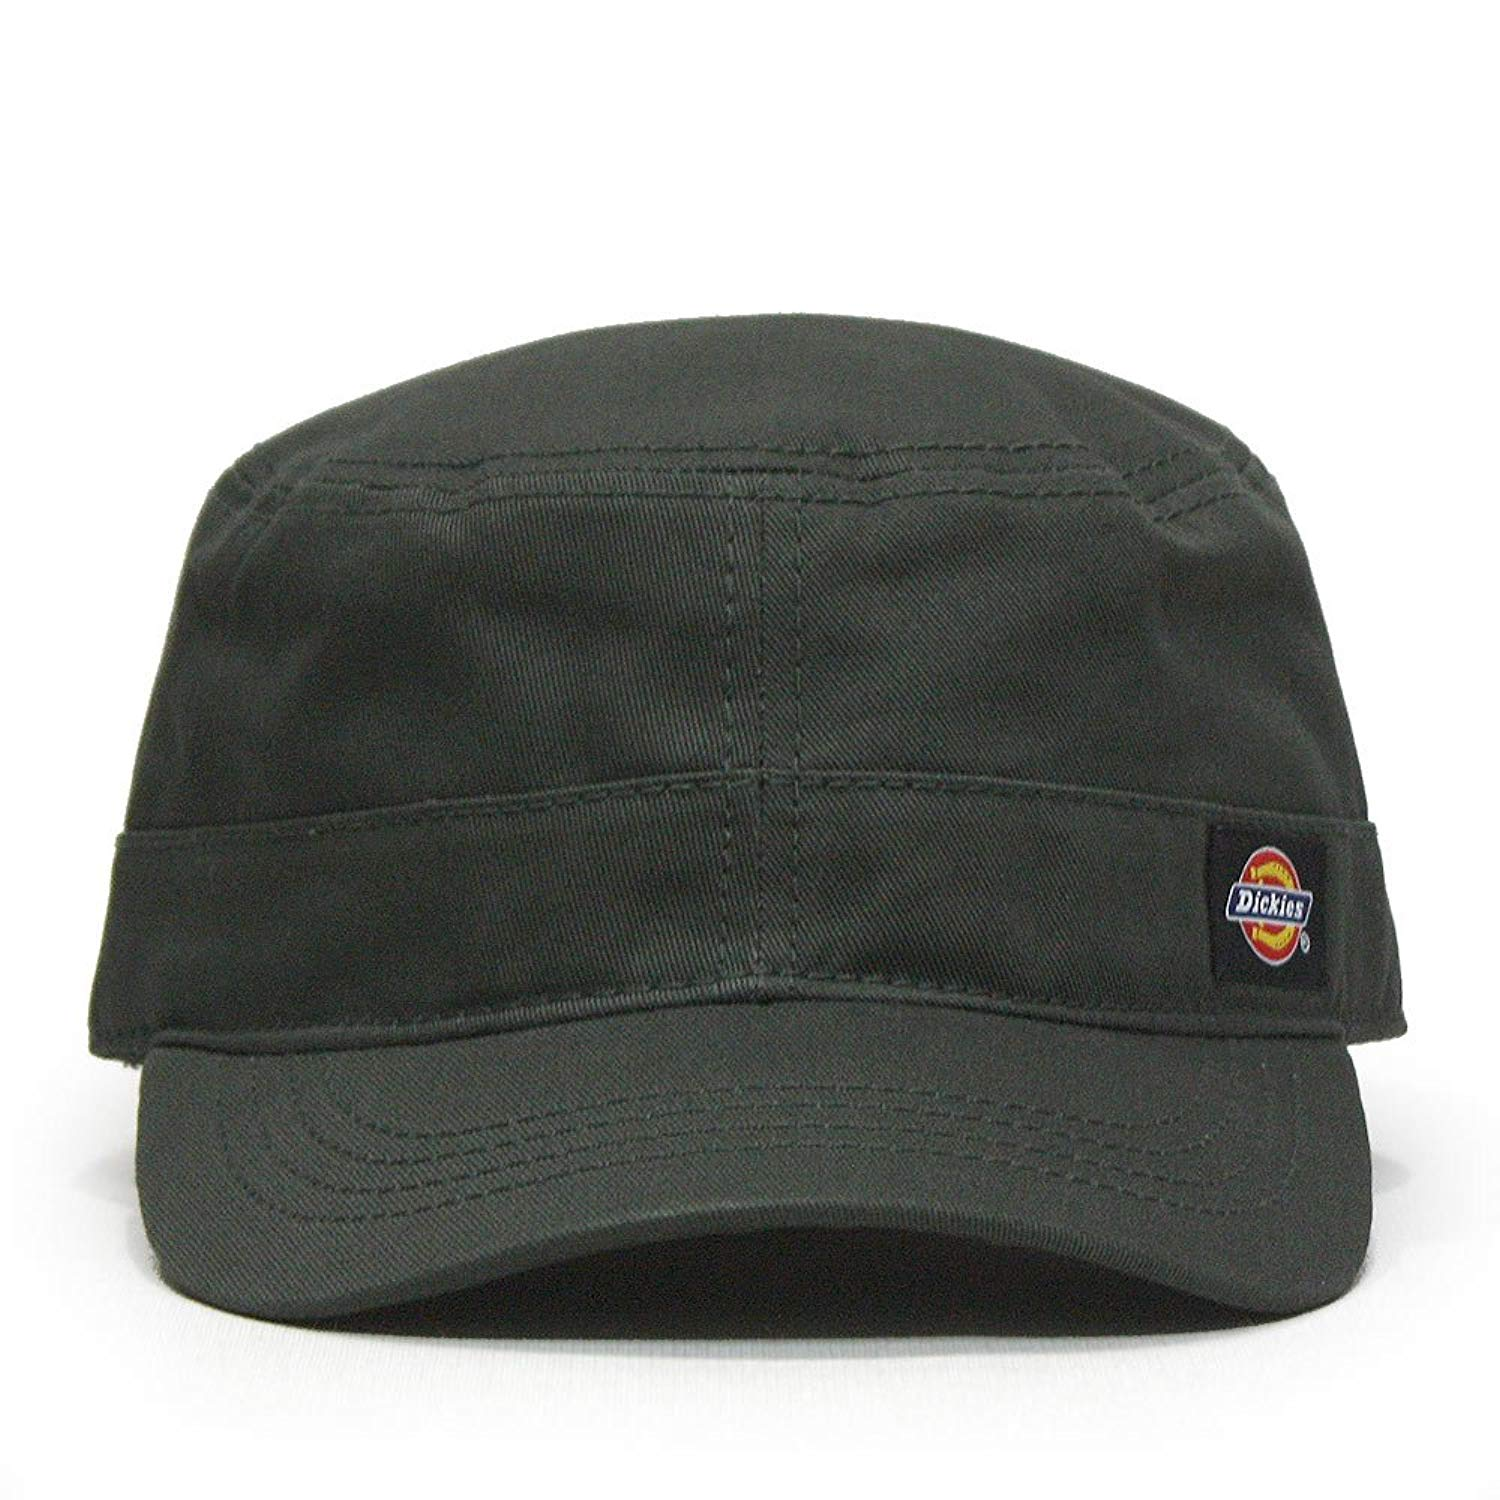 b1e3064c952 ... black plaid hat band and t... Get Quotations · Dickies Core Cotton  Canvas Fitted Cadet Military Radar Cap